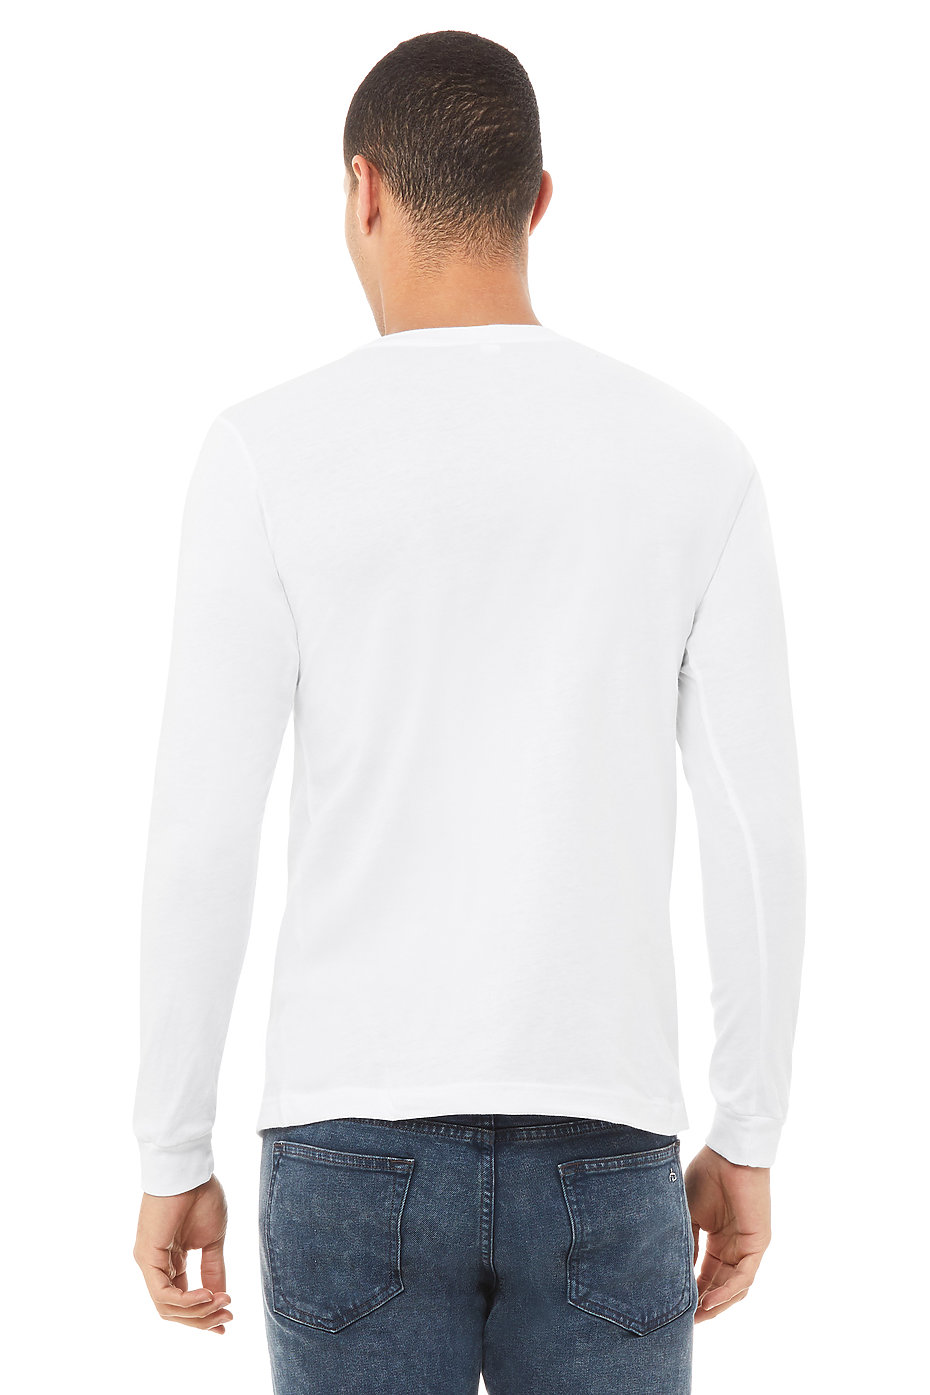 Bella+Canvas 3501 Unisex Jersey Long Sleeve Tee Tshirt Color Chart Bella Canvas 3501 Adult Long Sleeve Tee Color Chart Digital PNG